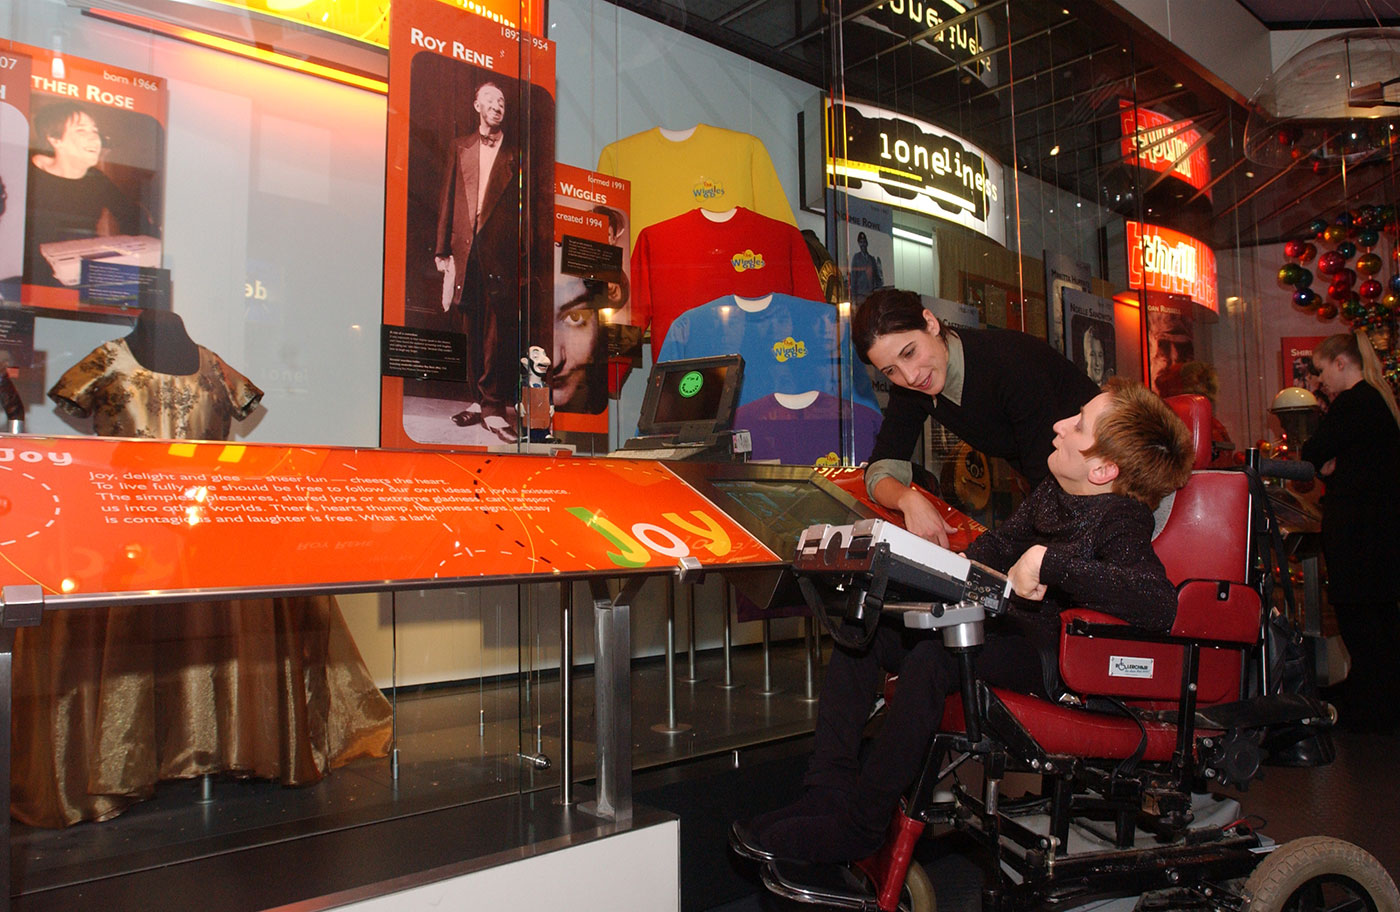 A woman talking to another woman in a wheel chair, in front of a large display cabinet with various objects. - click to view larger image